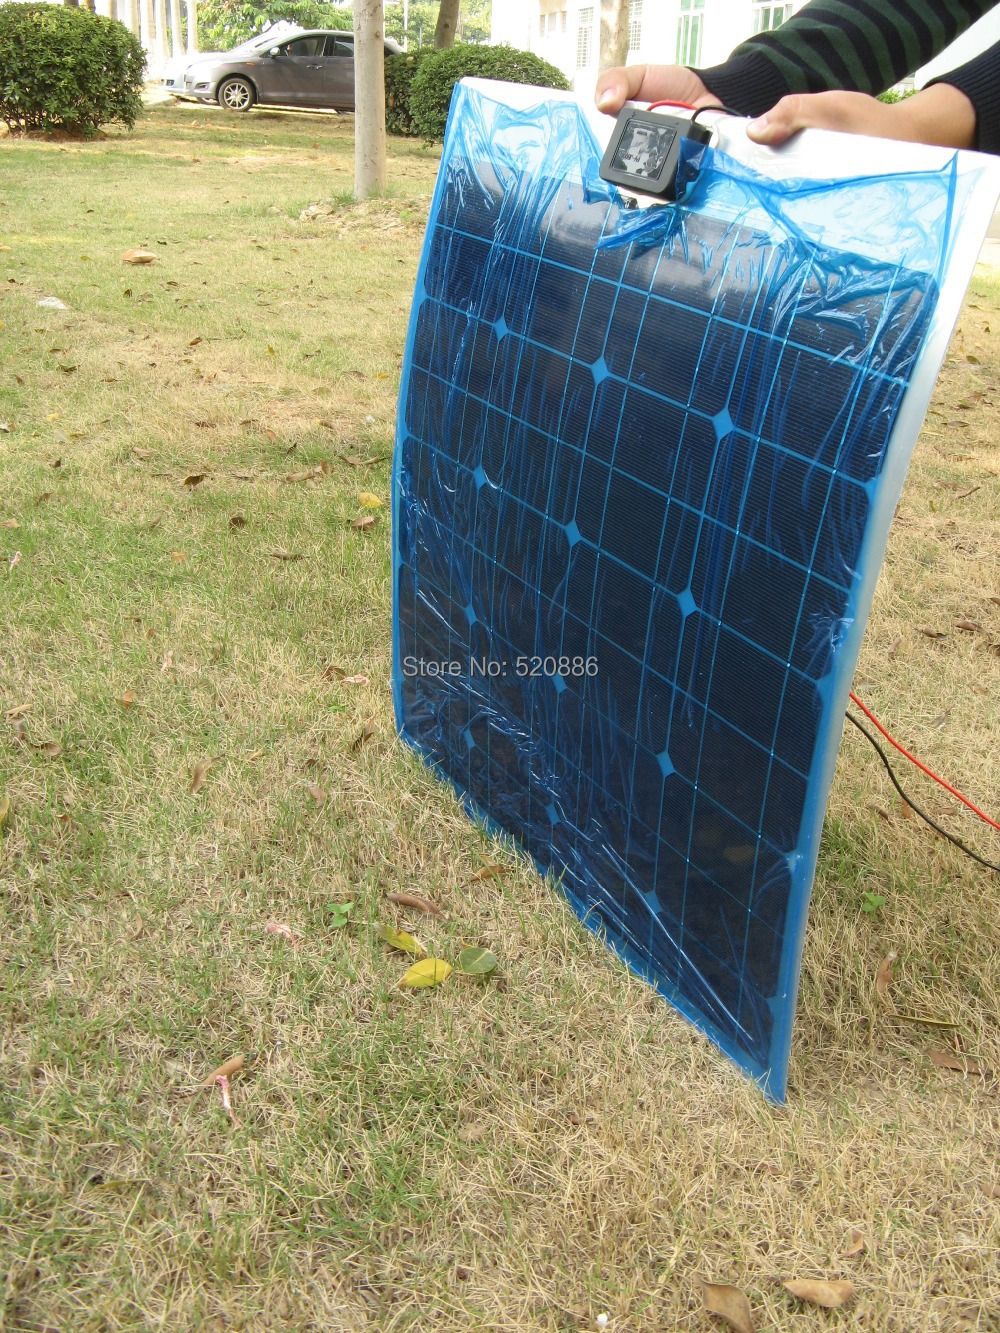 цена на USA stock, no tax, 2pcs 40W mono semi-flexible pv solar panel 12v, for boat RV, home solar system, car battery, free shipping